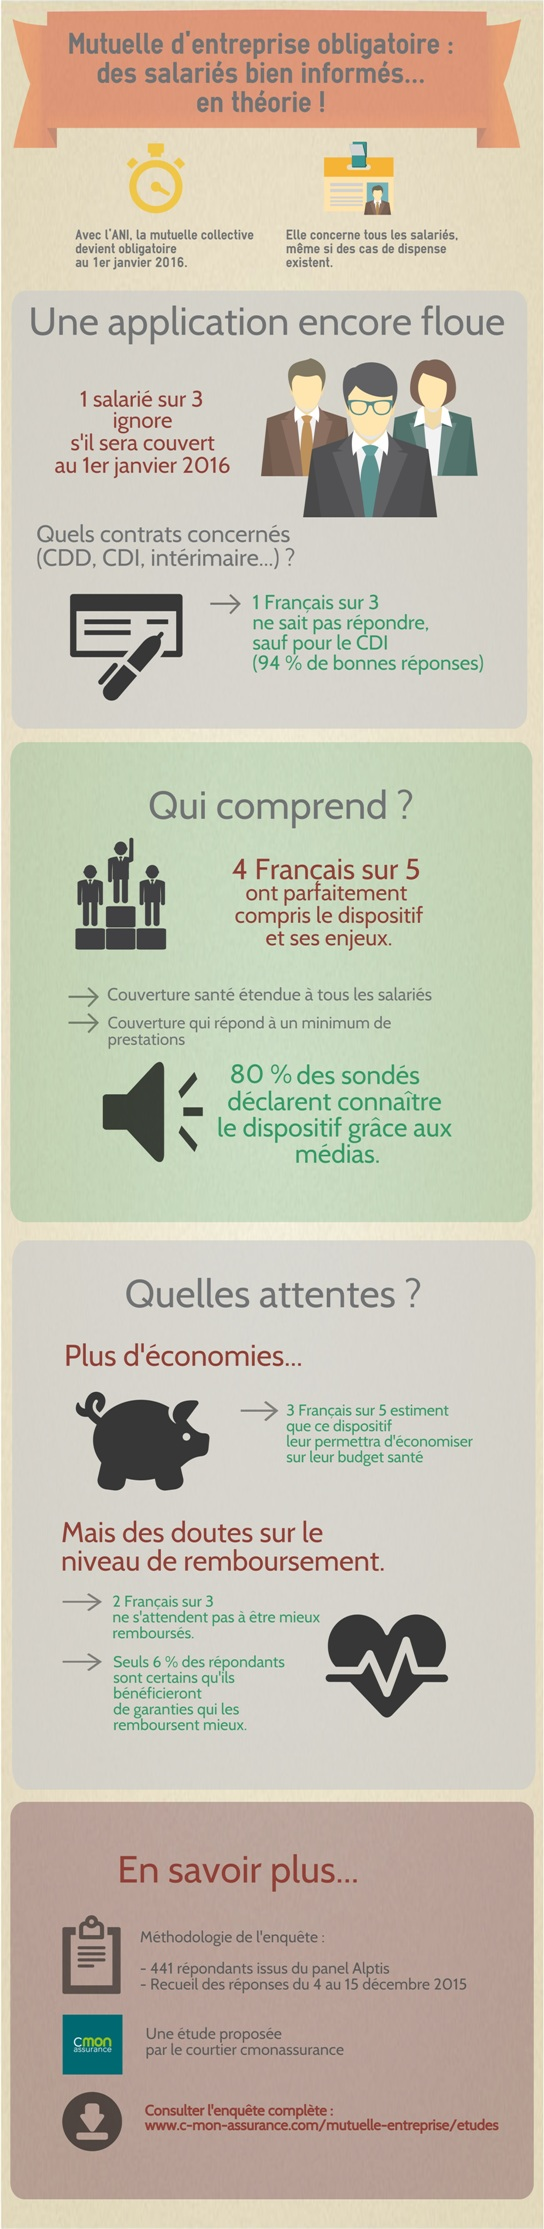 infographie mutuelle entreprise